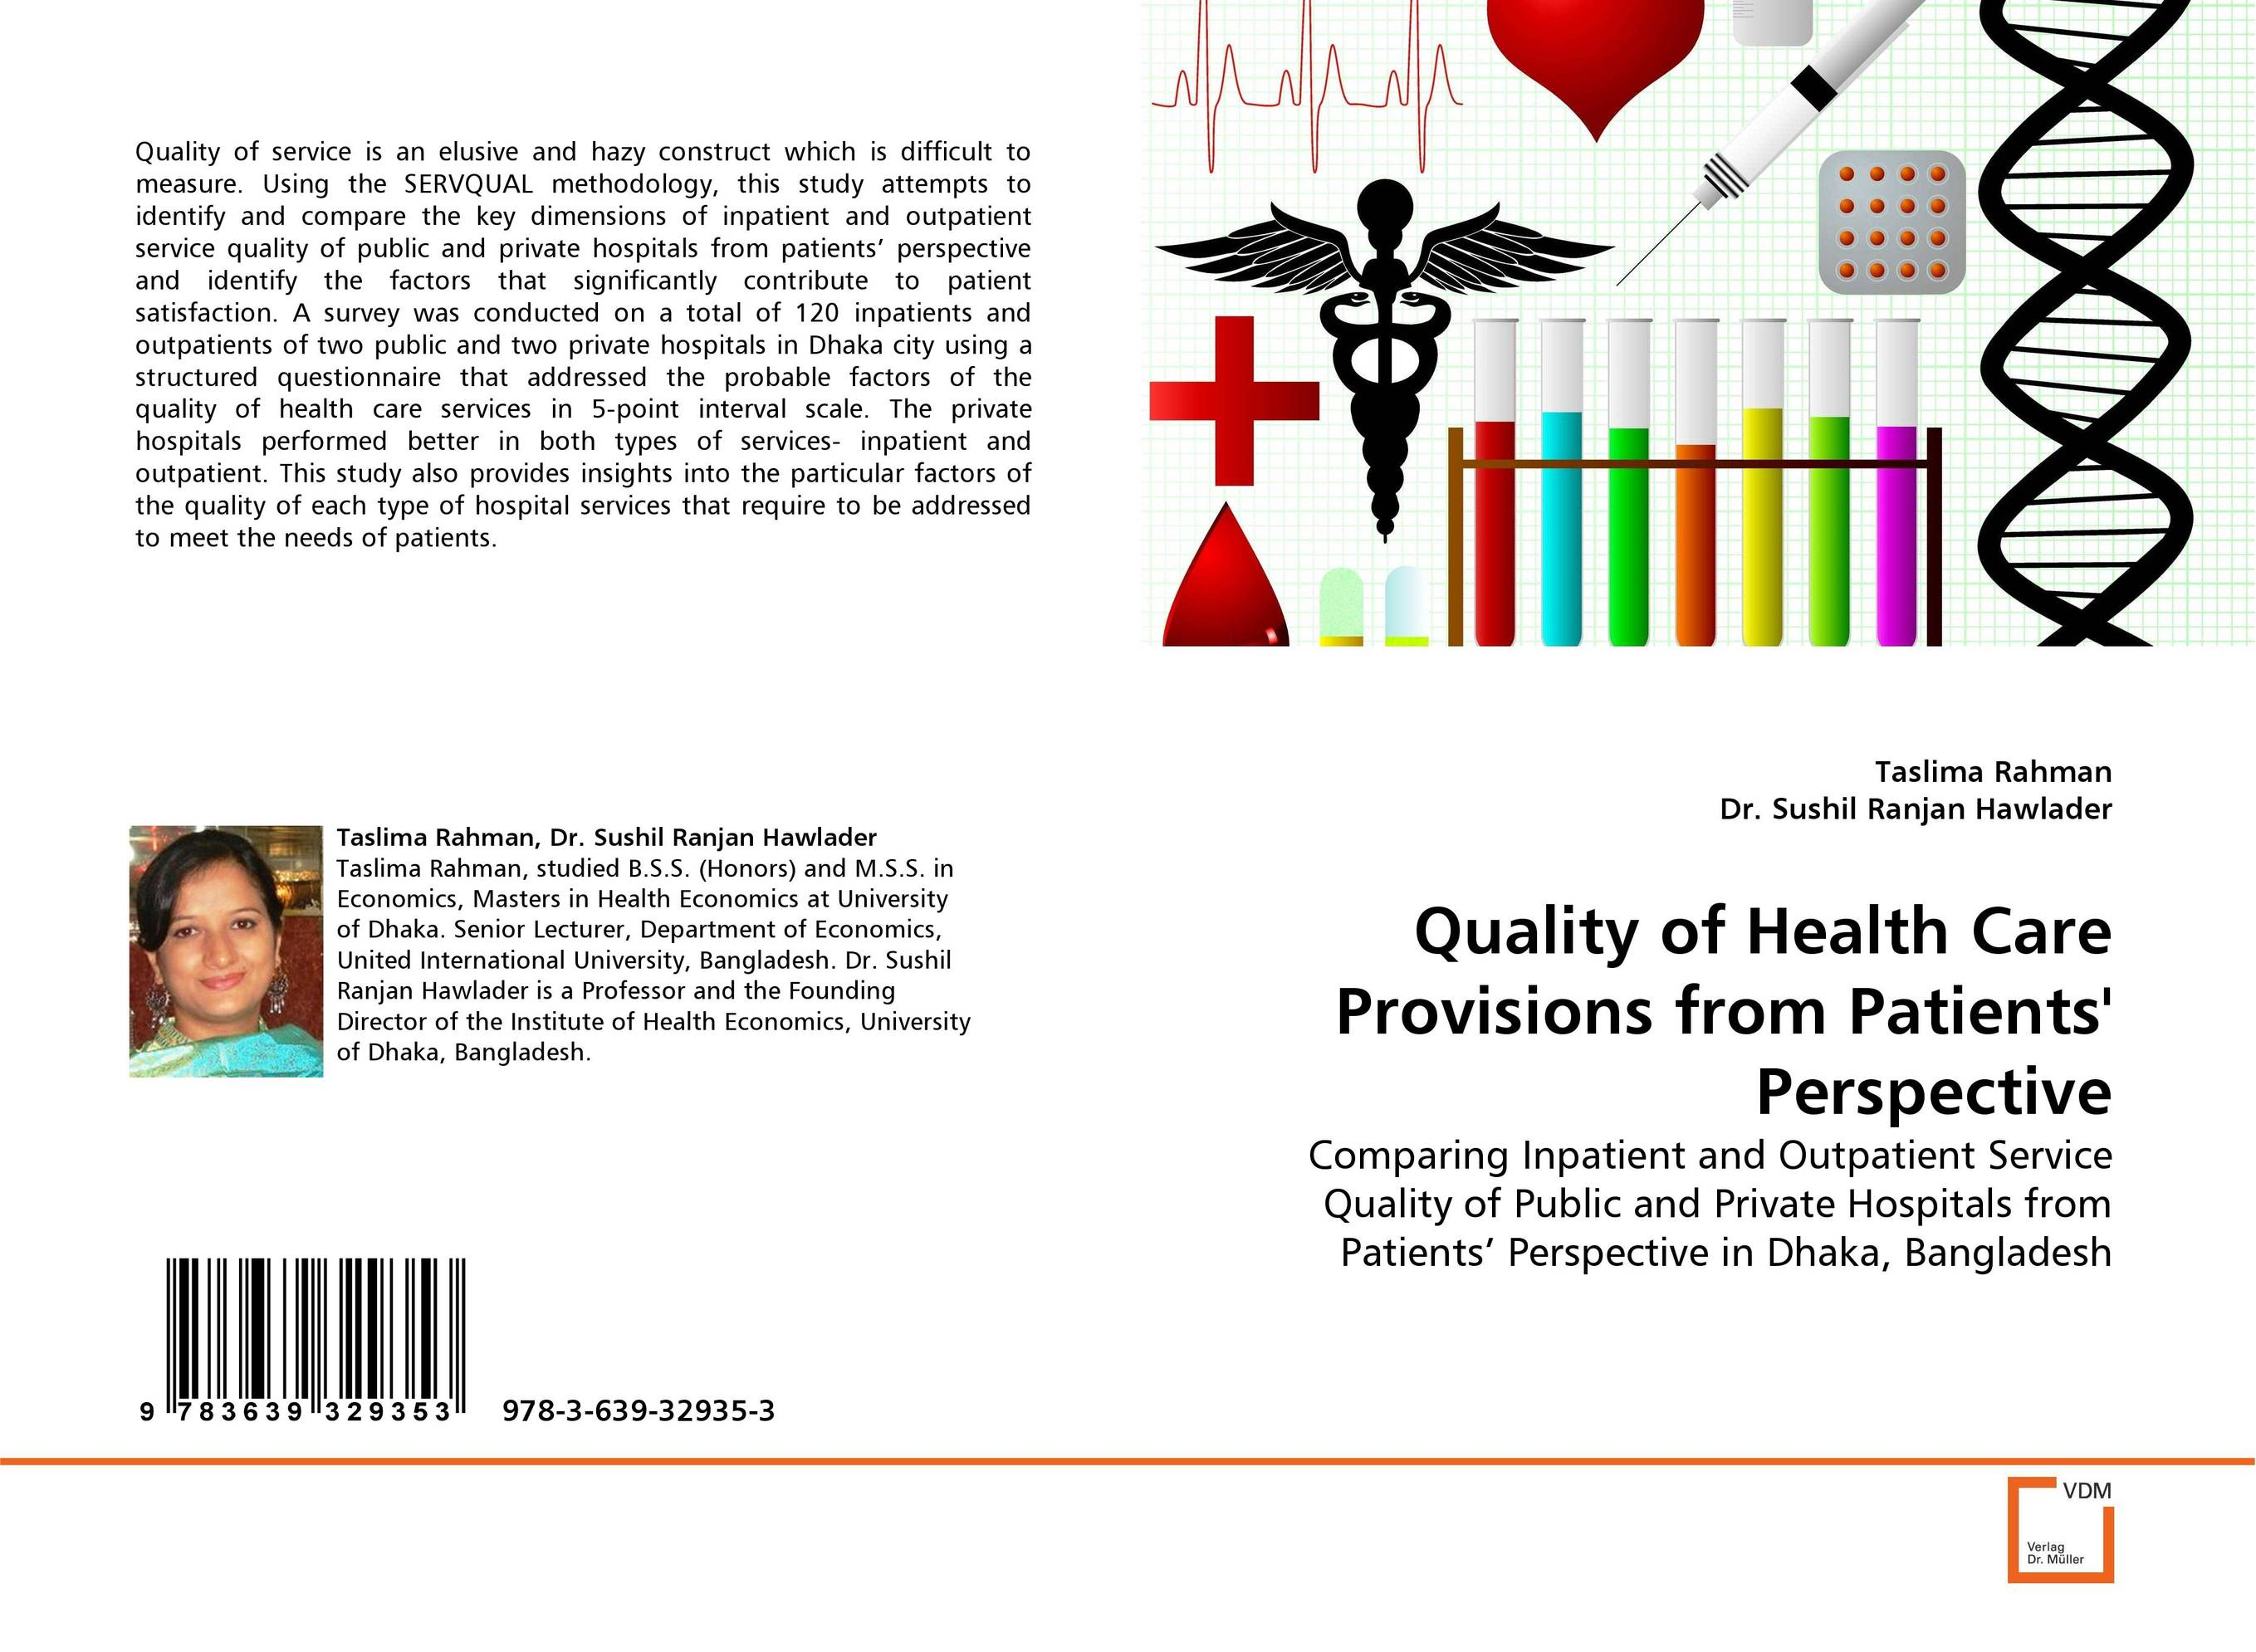 Quality of Health Care Provisions from Patients'' Perspective a comparative study of public and private healthcare services